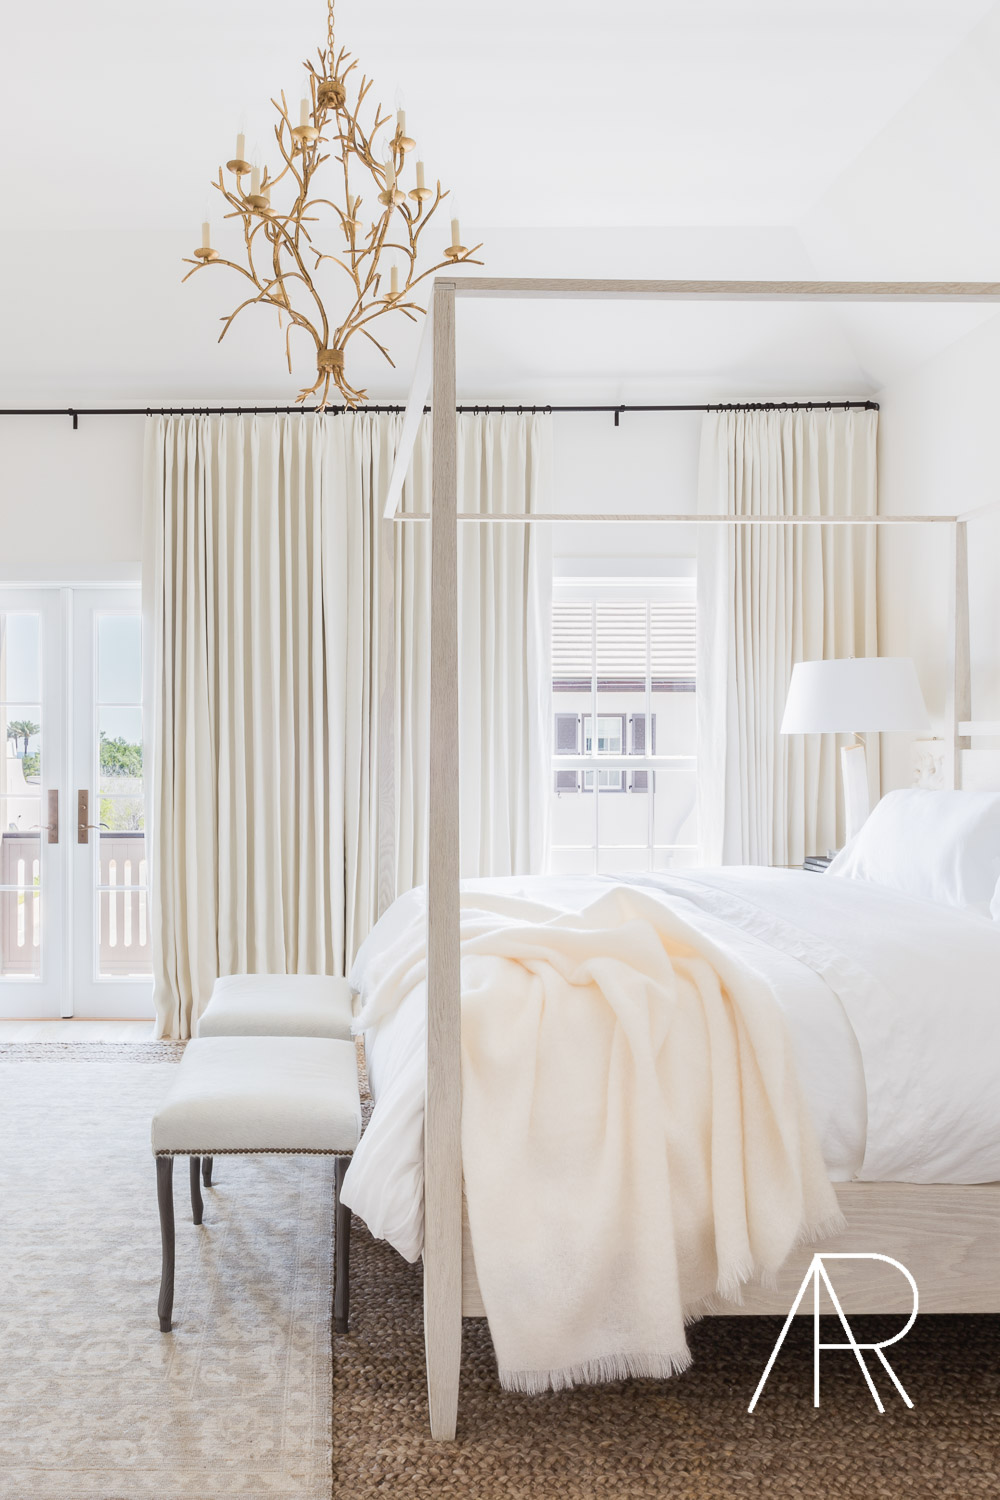 Alyssa Rosenheck's The New Southern Designer Spotlight with MyDomaine Chelsea Robinson Interiors and Alys Beach Photo: ©AlyssaRosenheck2017